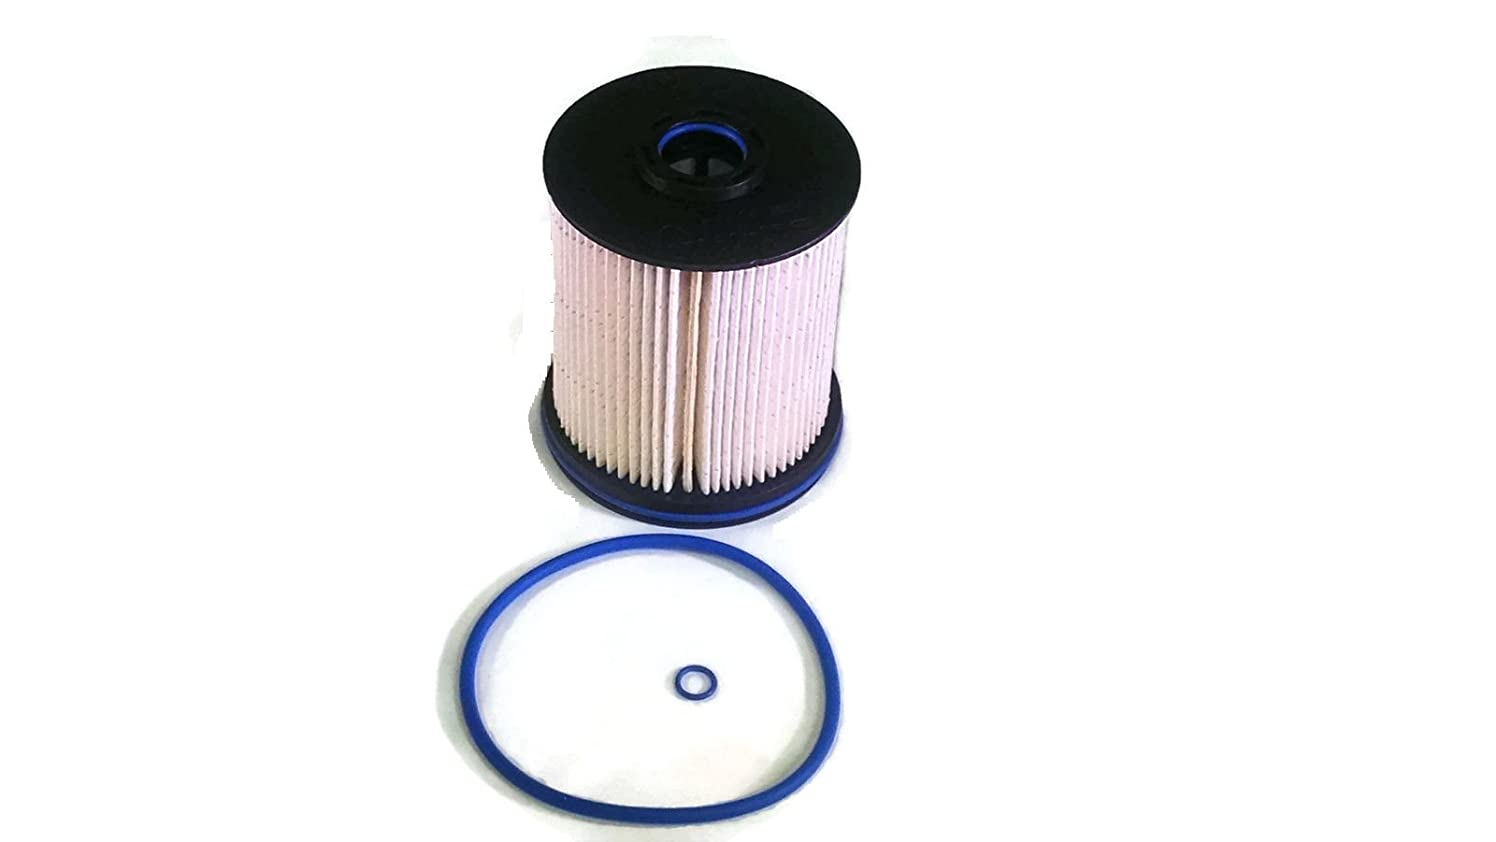 Genuine GM Filter Kit Part # 23456595 replaced by 23304096